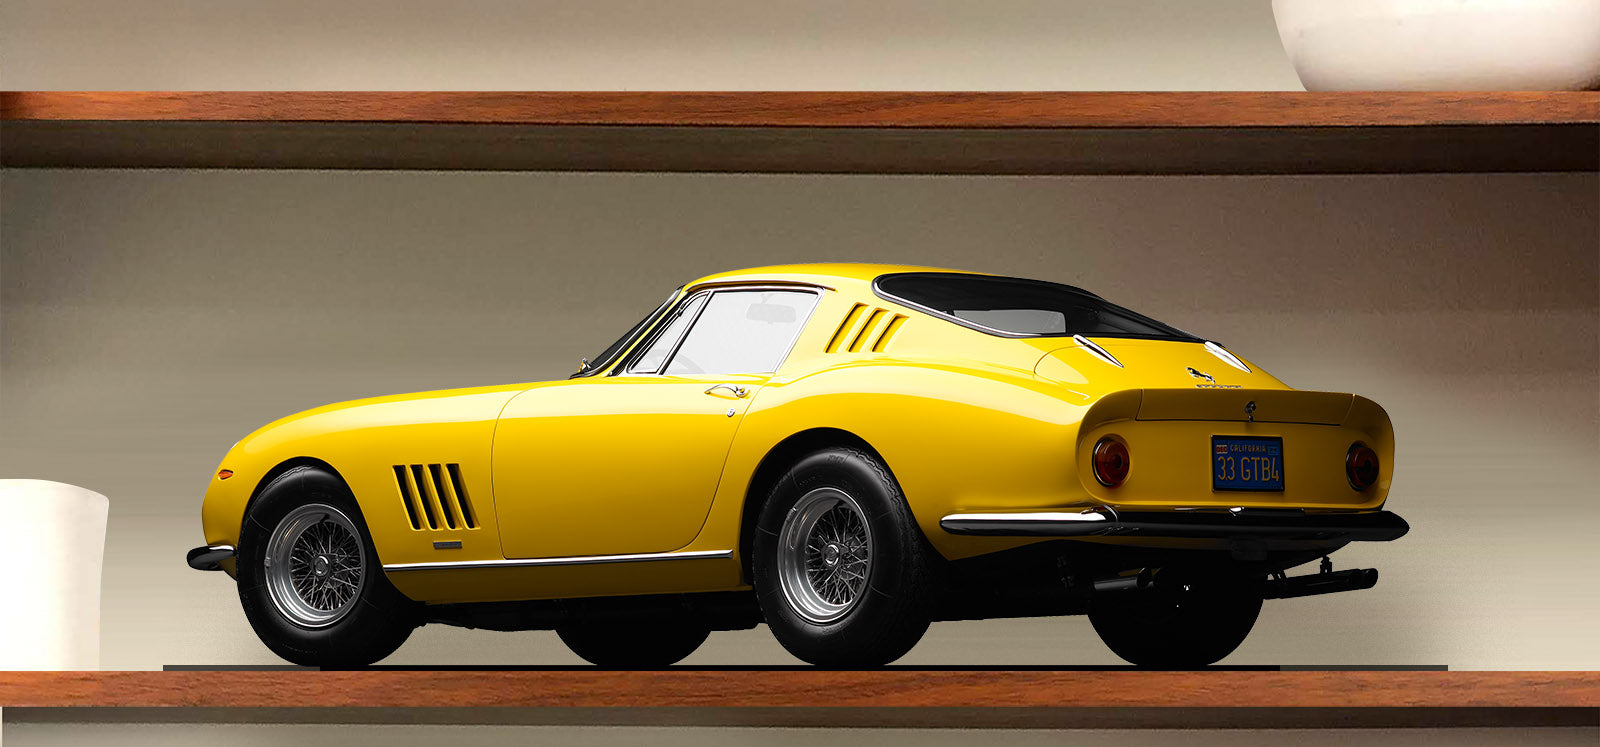 MotoMirage™ Limited Edition 1968 Ferrari 275 GTB4 by Michael Furman